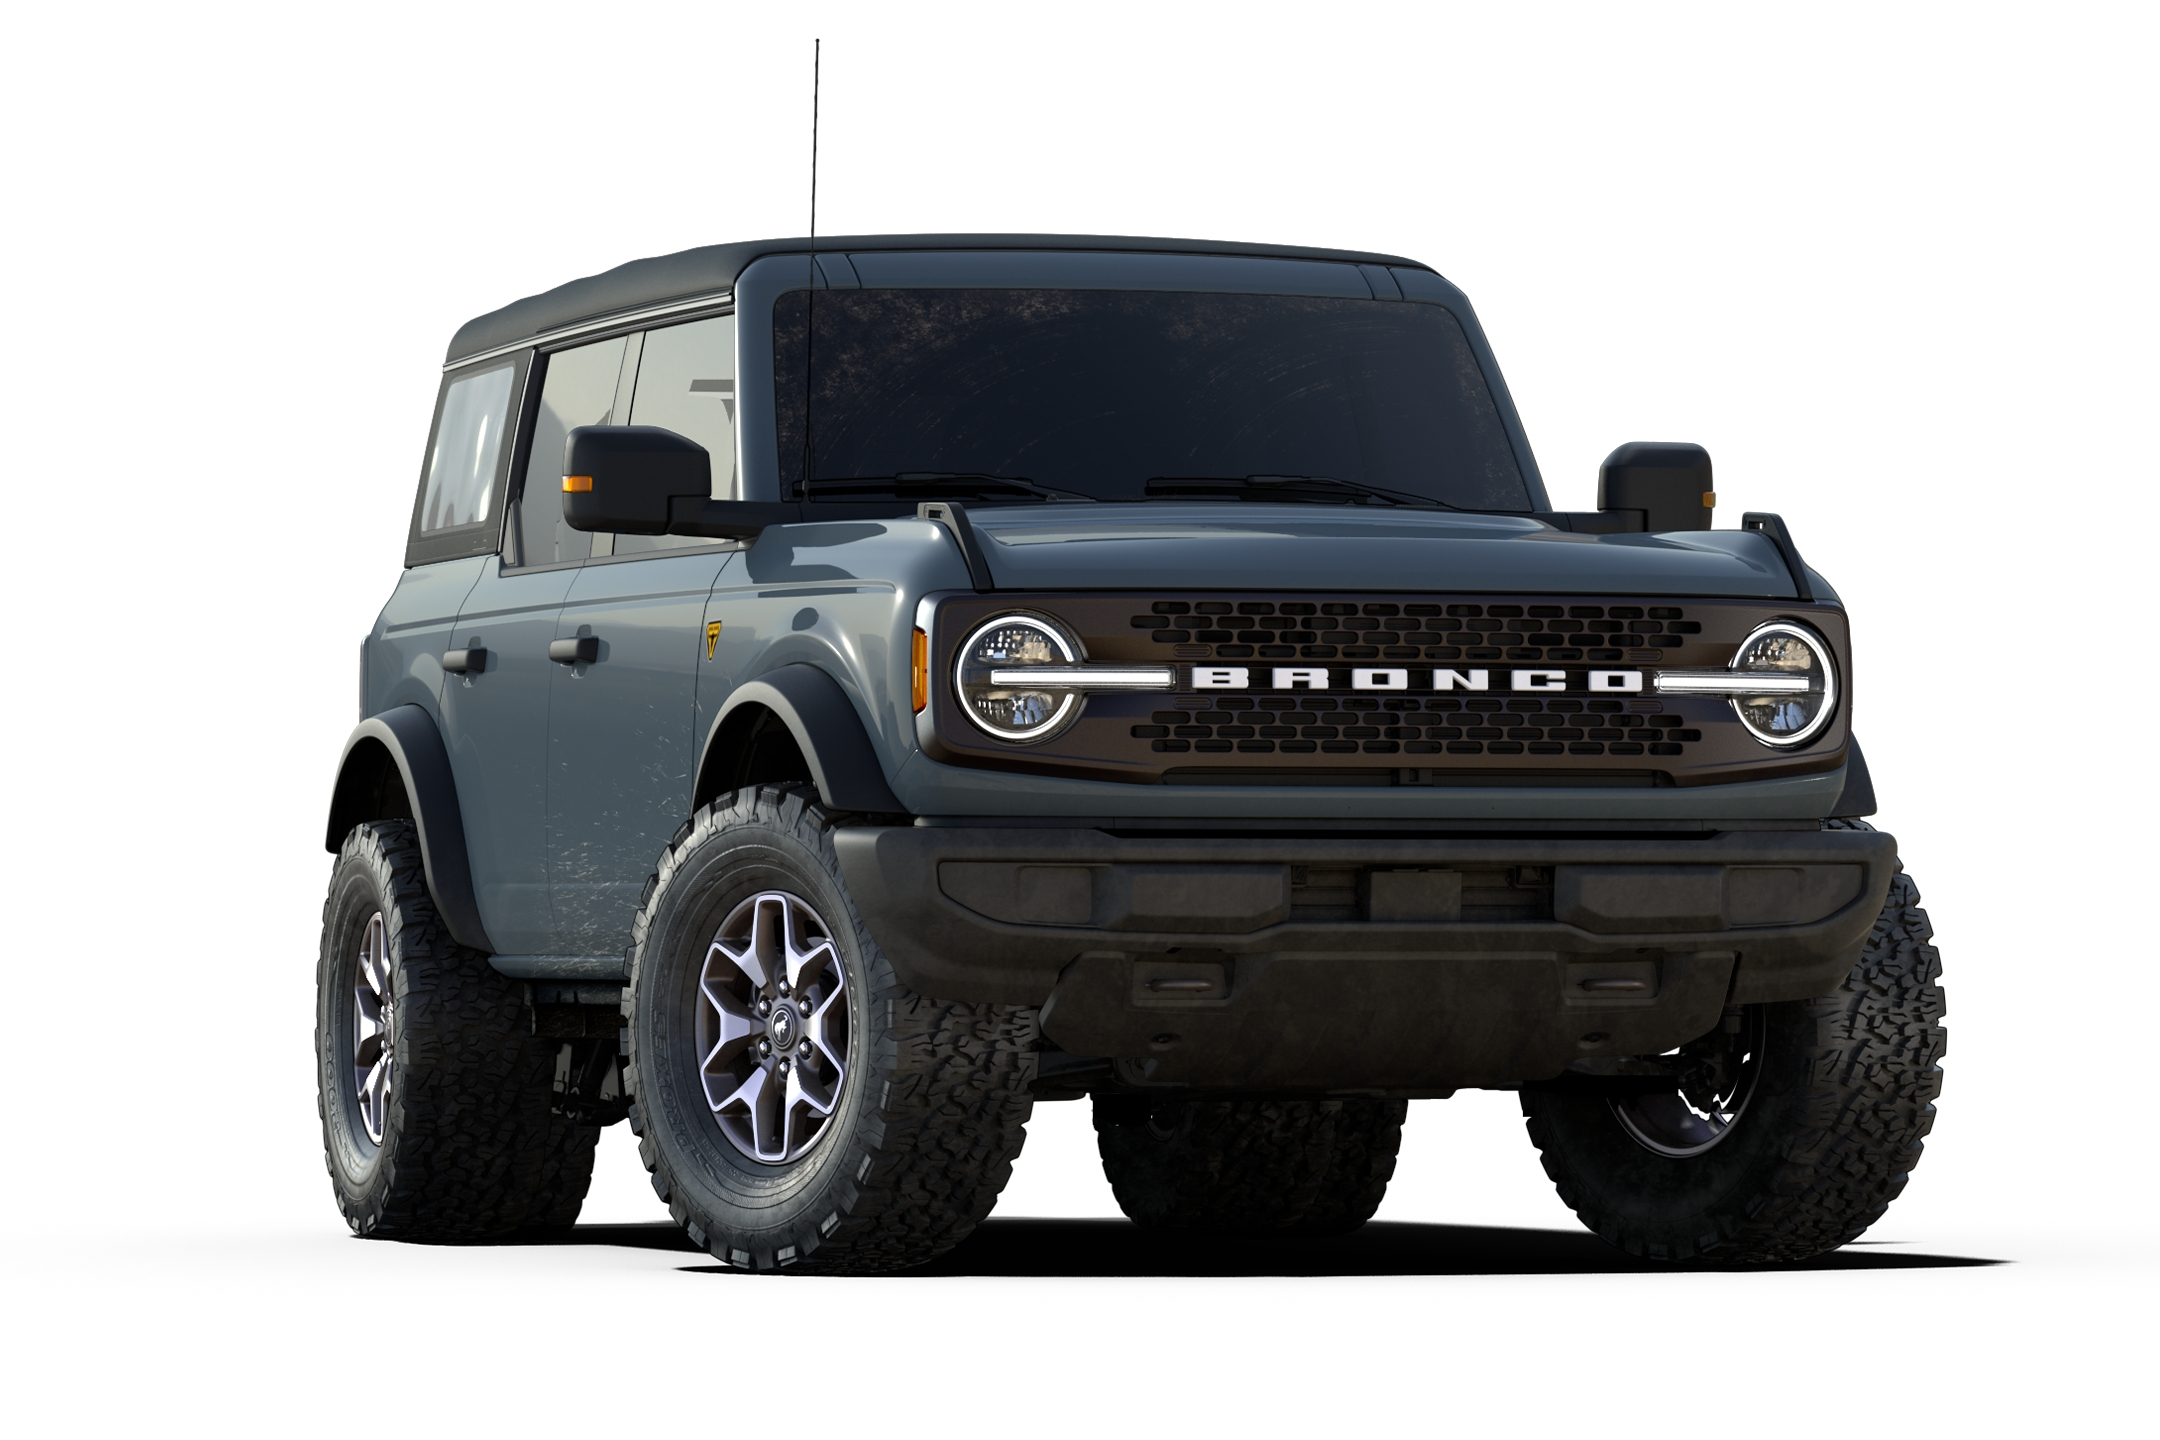 bronco badlands trim